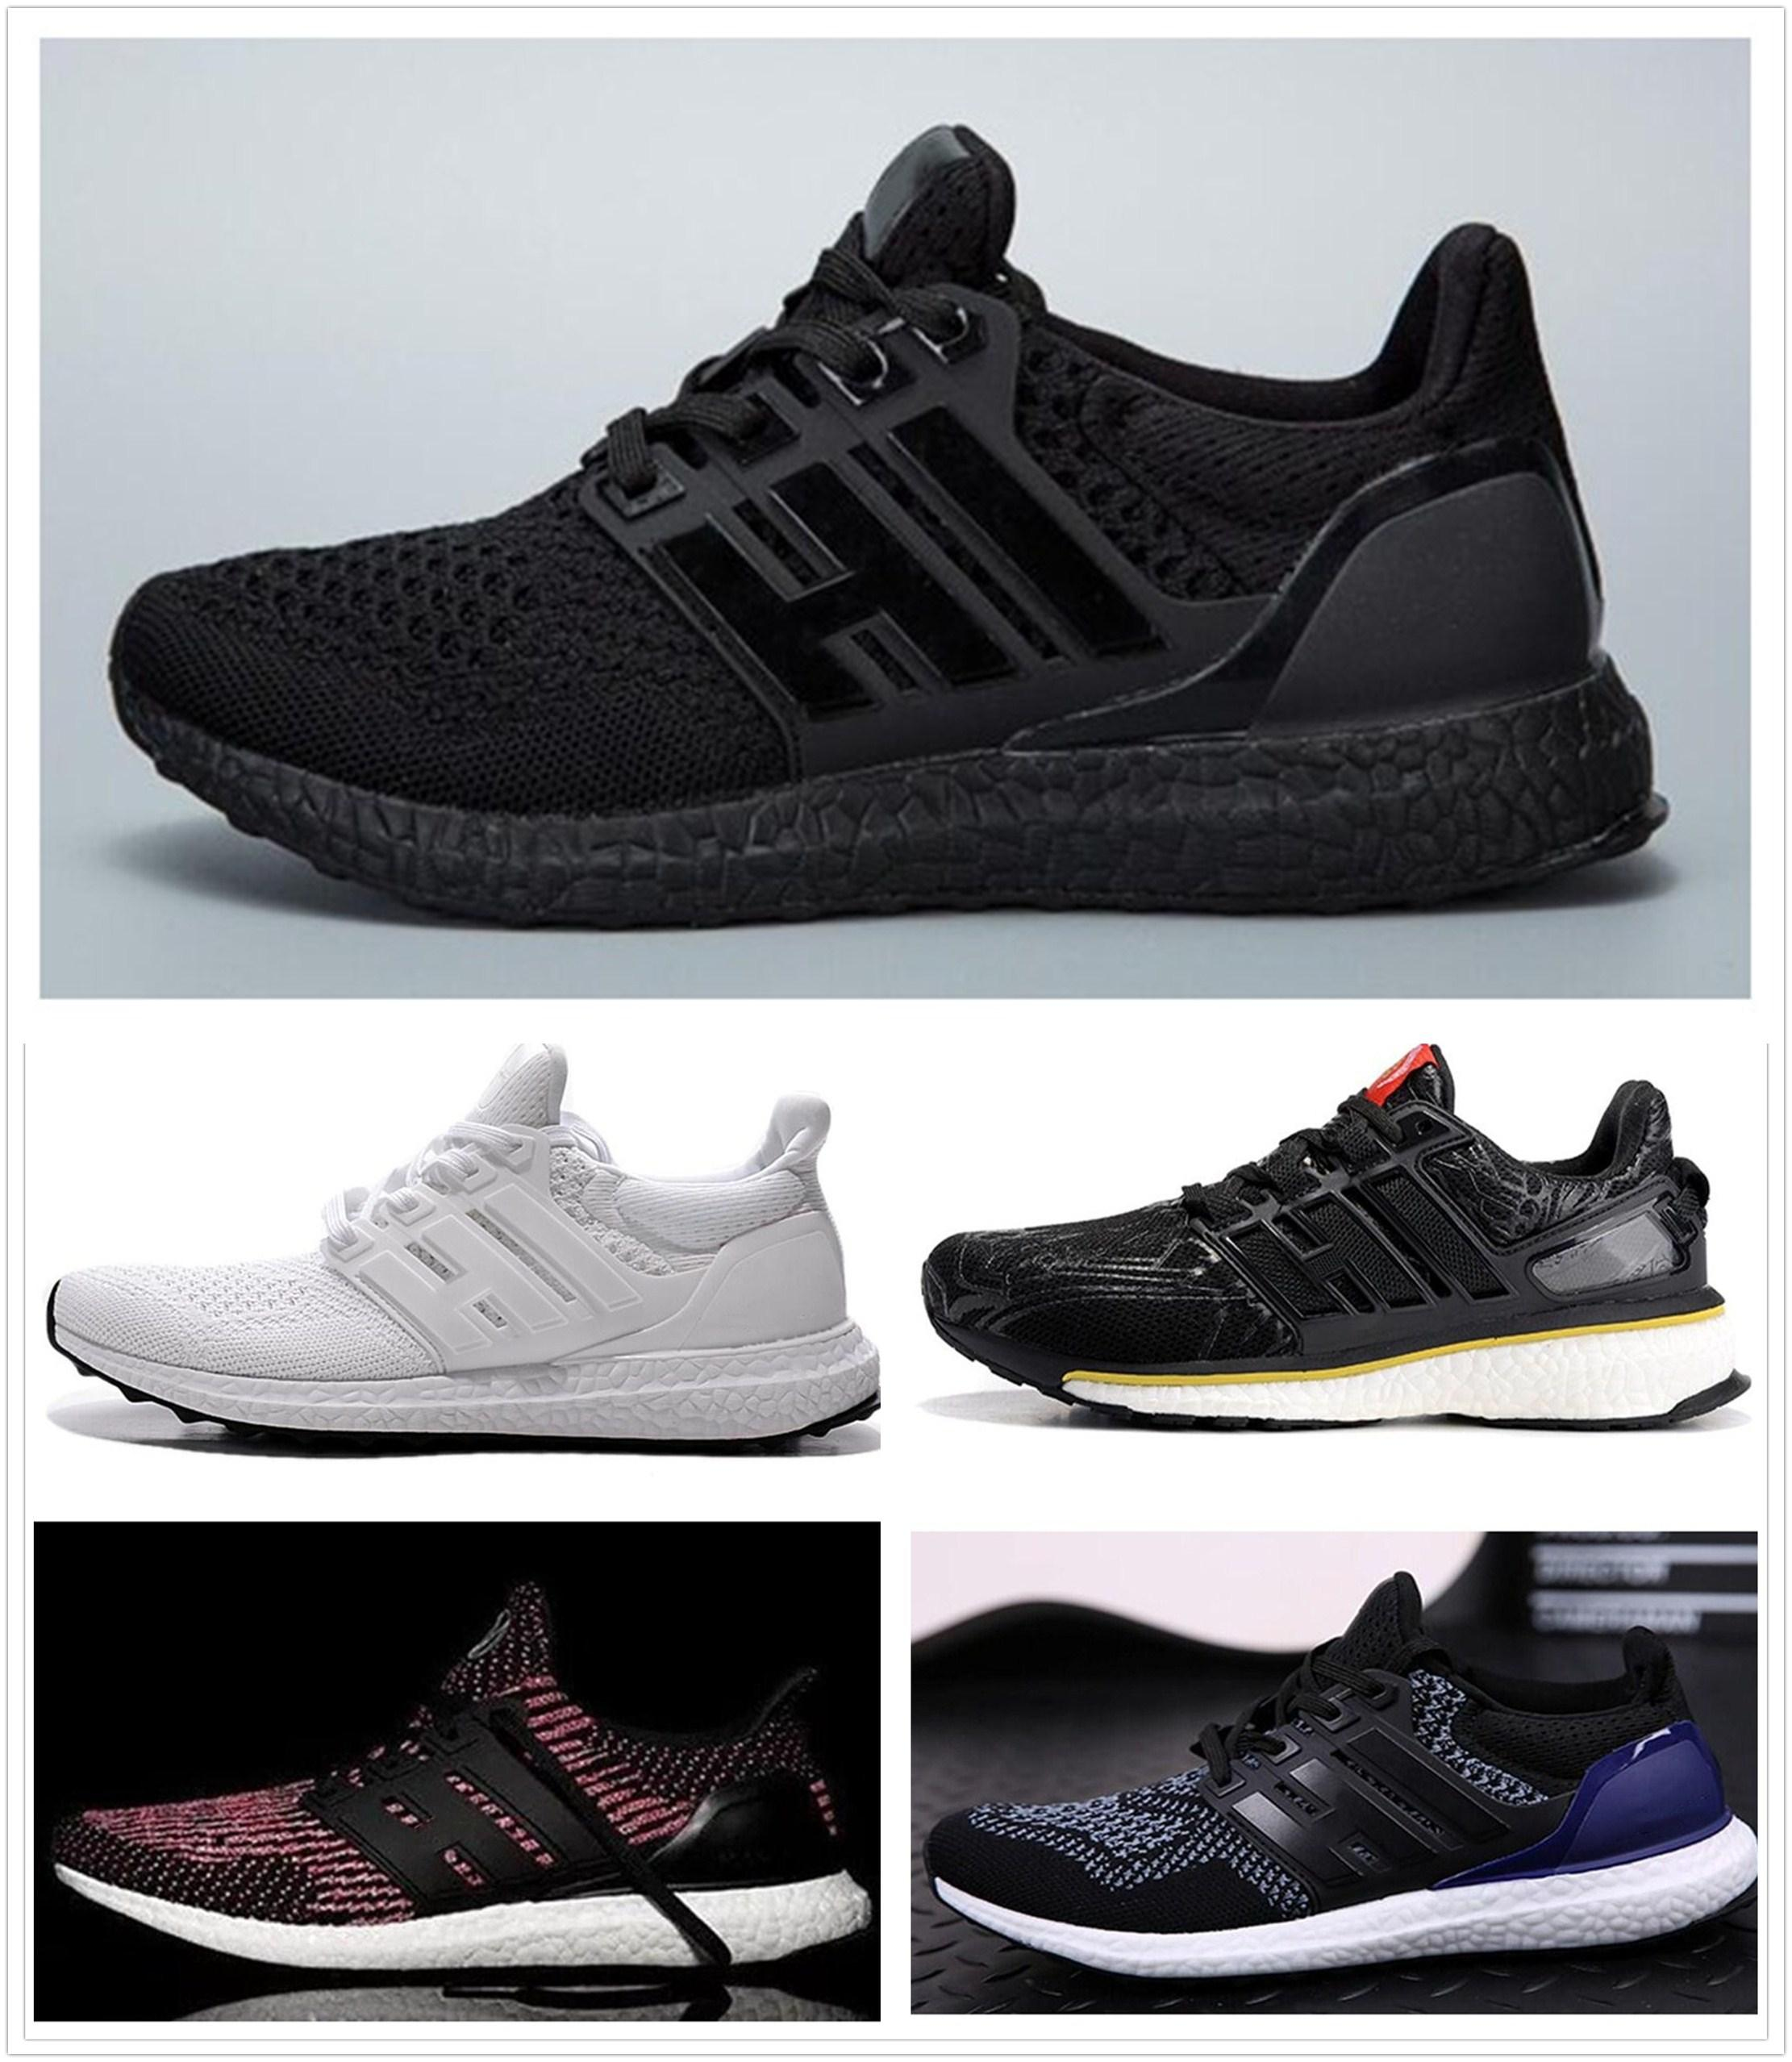 2457c20a0 2017 Ultra Boost ATR Mid Trace Khaki CG3001 Running Shoes Real Boost  Endiess Energy Sneakers For Mens Oreo MID Boots Ultraboos Boys Tennis  Trainers Girls ...